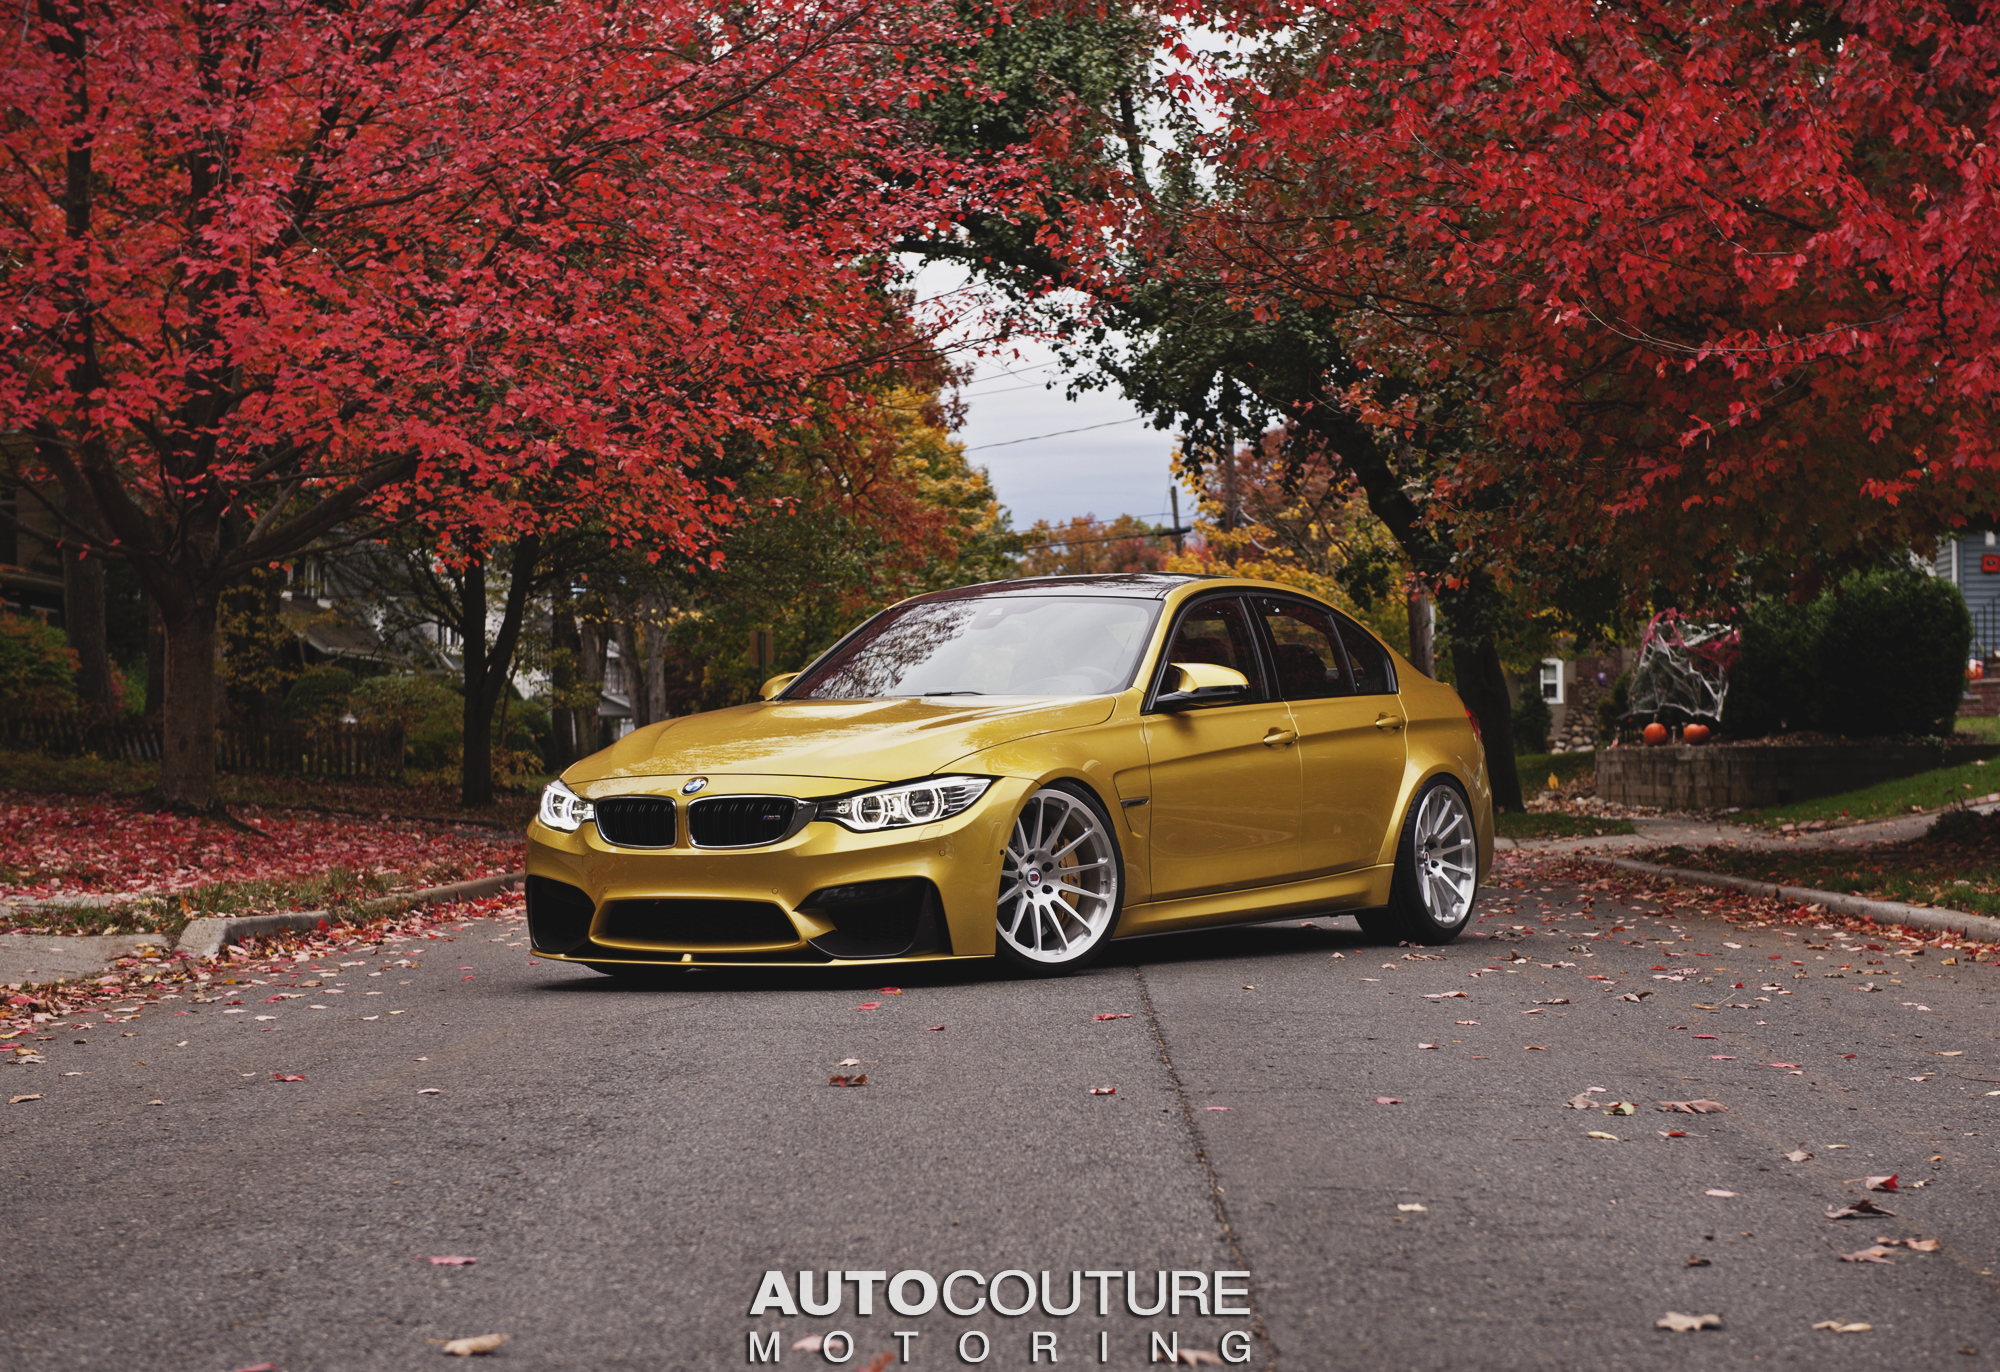 bmw f80 m3 shows its autumn colors on hre classic wheels